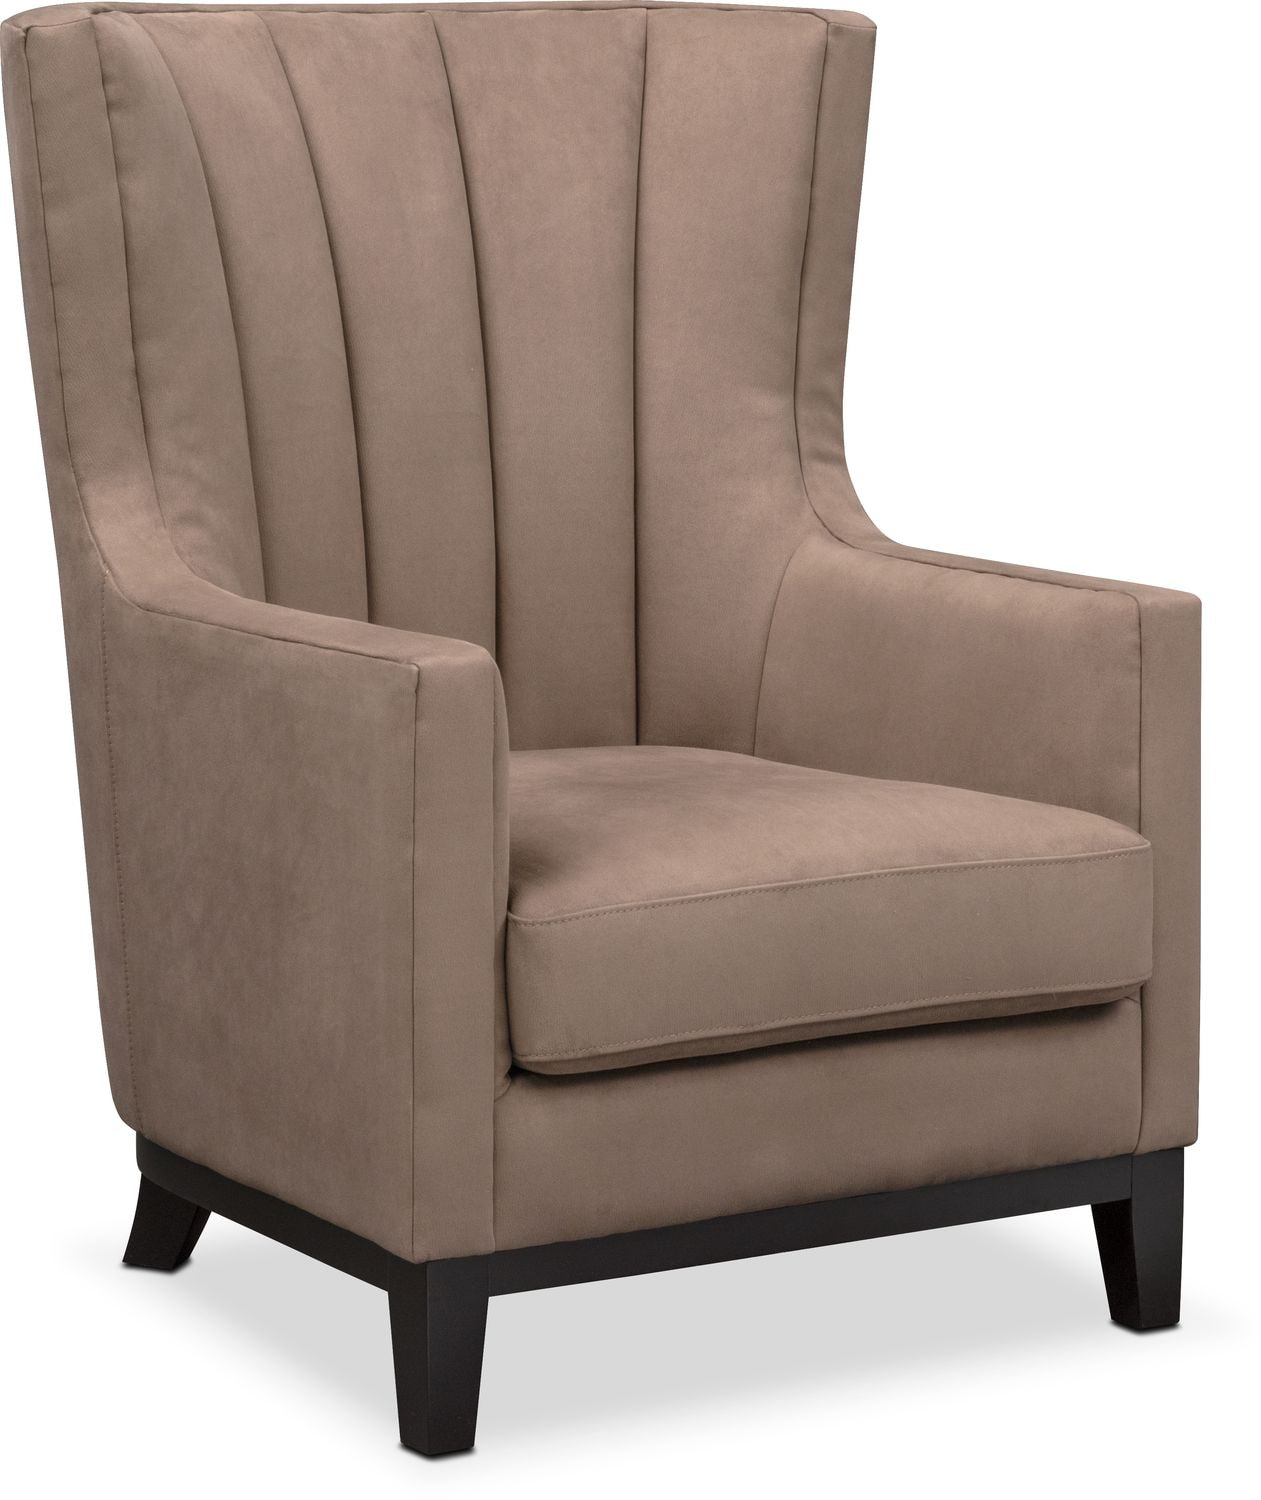 Brown Accent Chairs Brianna Accent Chair Brown Value City Furniture